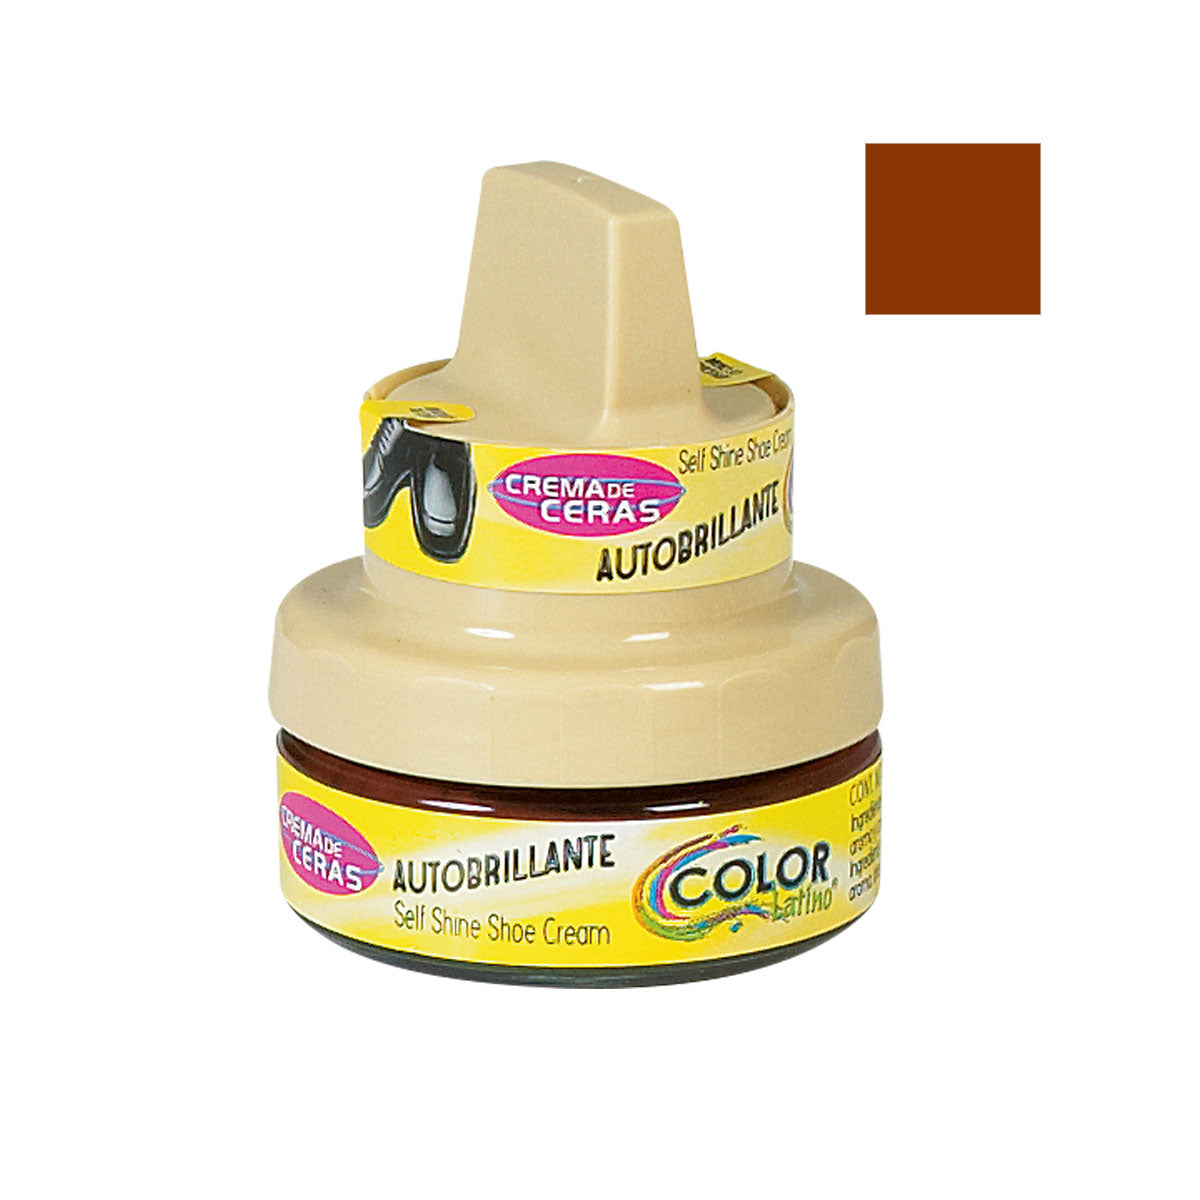 CREMA AUTOBRILLANTE 50 ml COLOR: MARRON